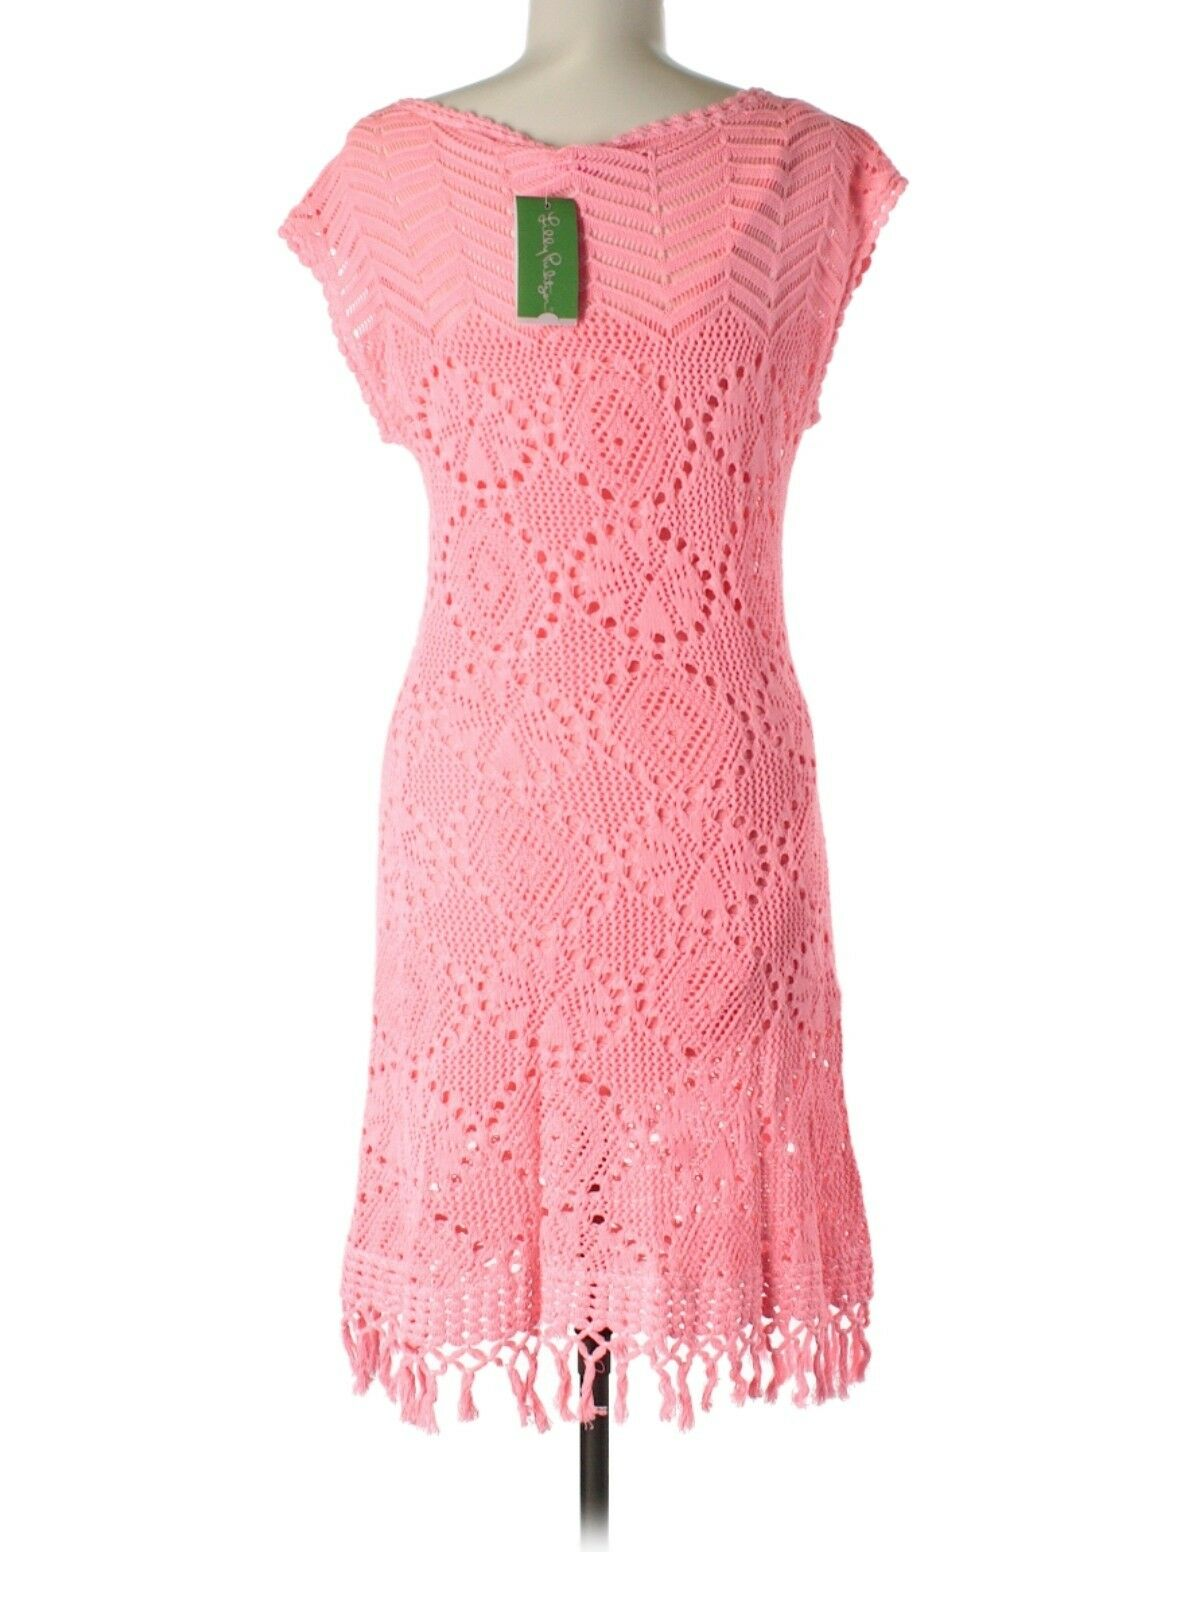 a58eb598467ea9 Lilly Pulitzer Adabelle Sweater Dress Yummy Melon M for sale online ...